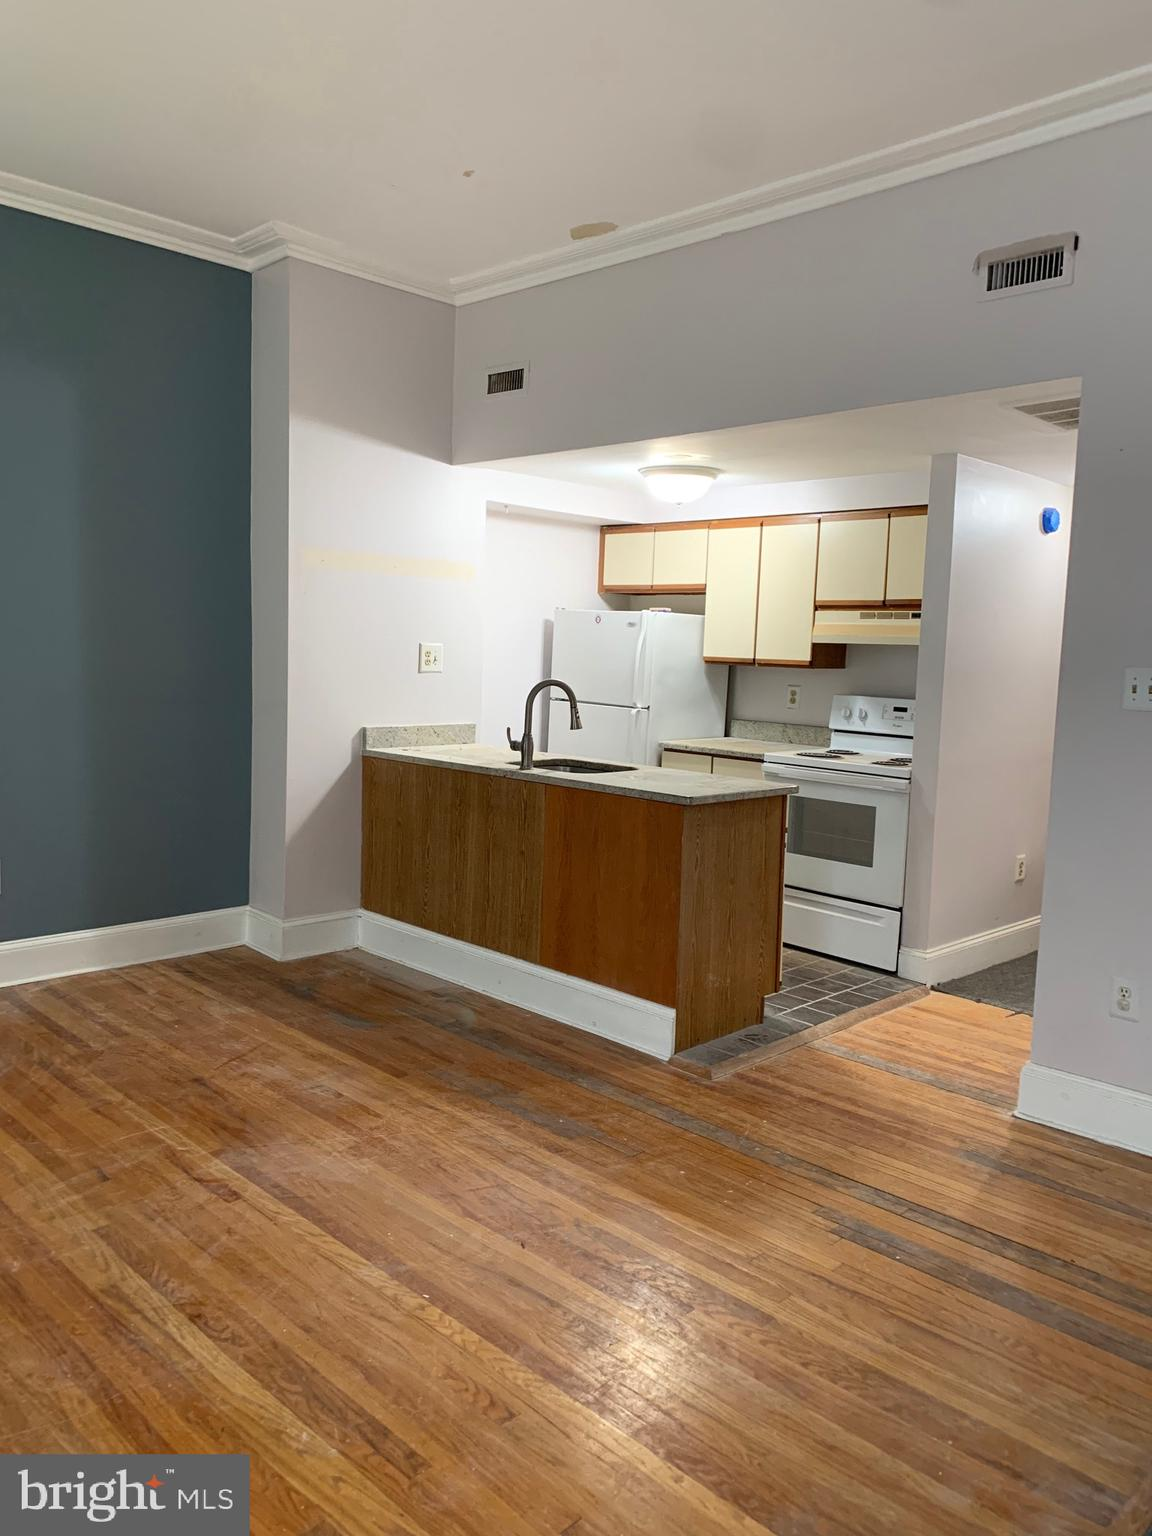 This light filled apartment boasts high ceilings, great natural sun light, open kitchen with brand new GRANITE counter tops, 2 well proportioned bedrooms, and BRAND NEW MARBLE and TILE  bath. Beautiful hardwood floors, central air, washer/dryer in unit. This awesome entire second floor residence is just minutes from Whole Foods Market, Target, Kelly Drive and  The ART MUSEUM!